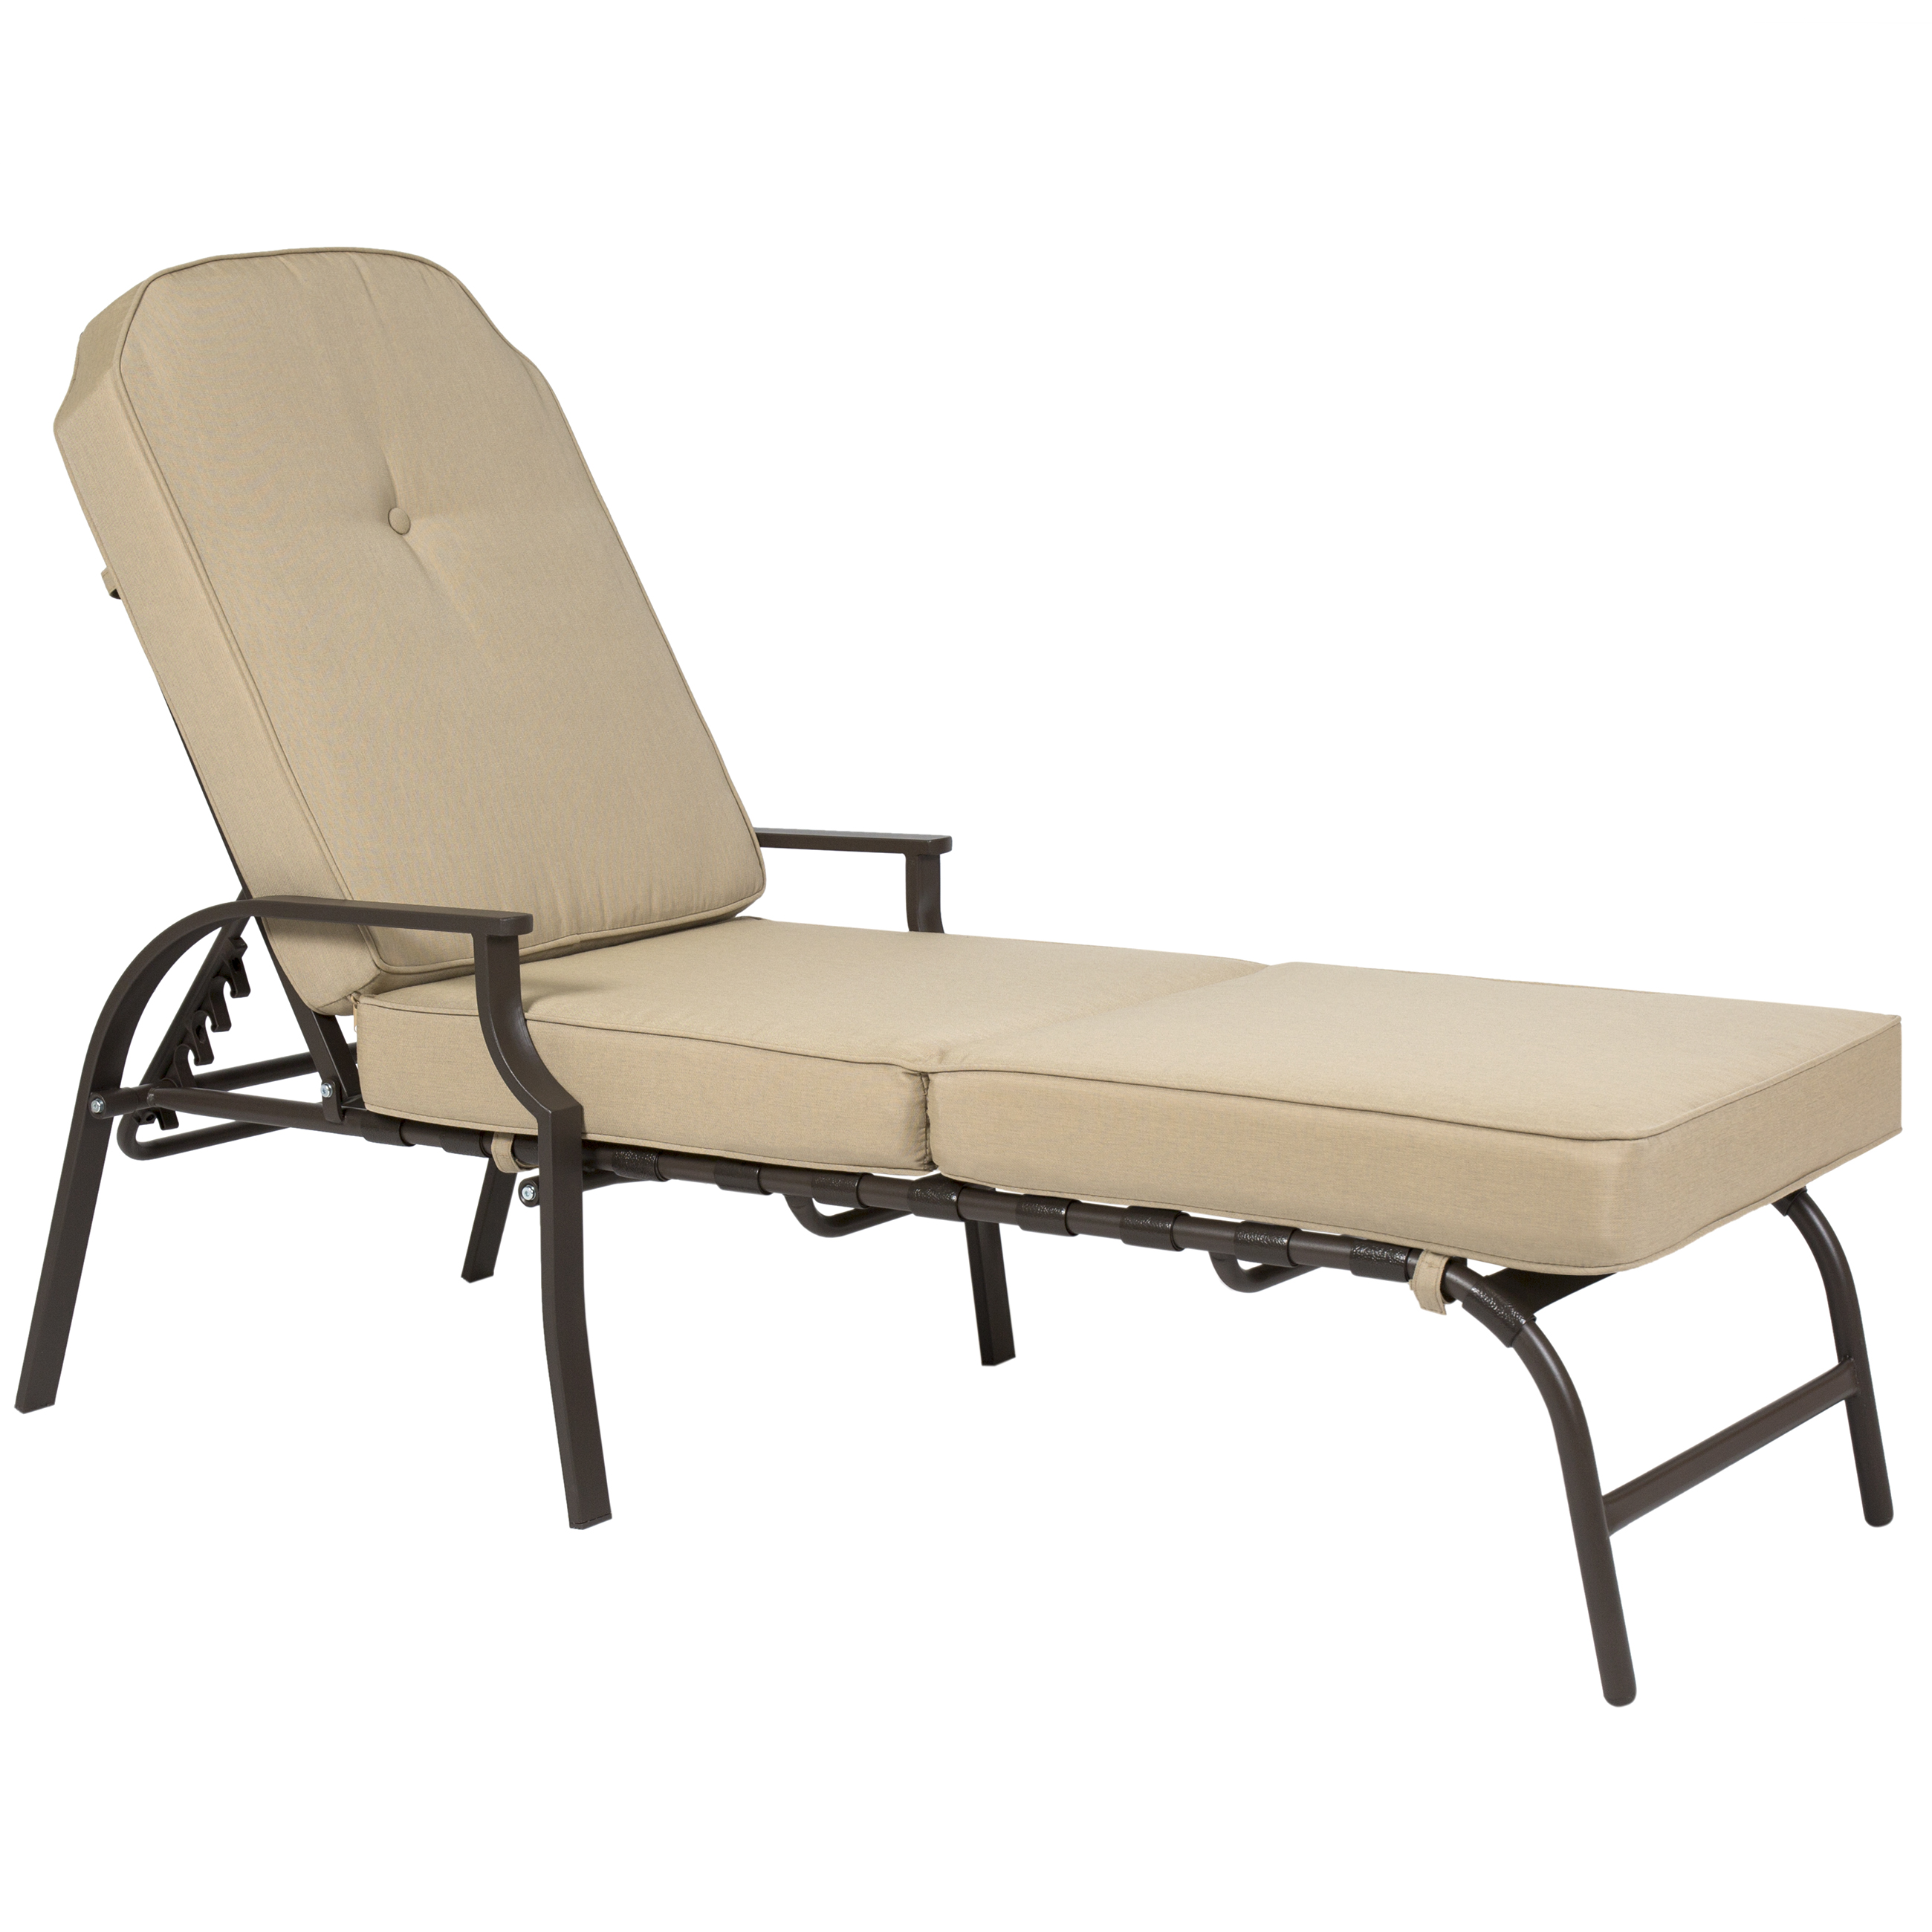 Best Choice Products Outdoor Chaise Lounge Chair W Cushion Pool Patio Furniture